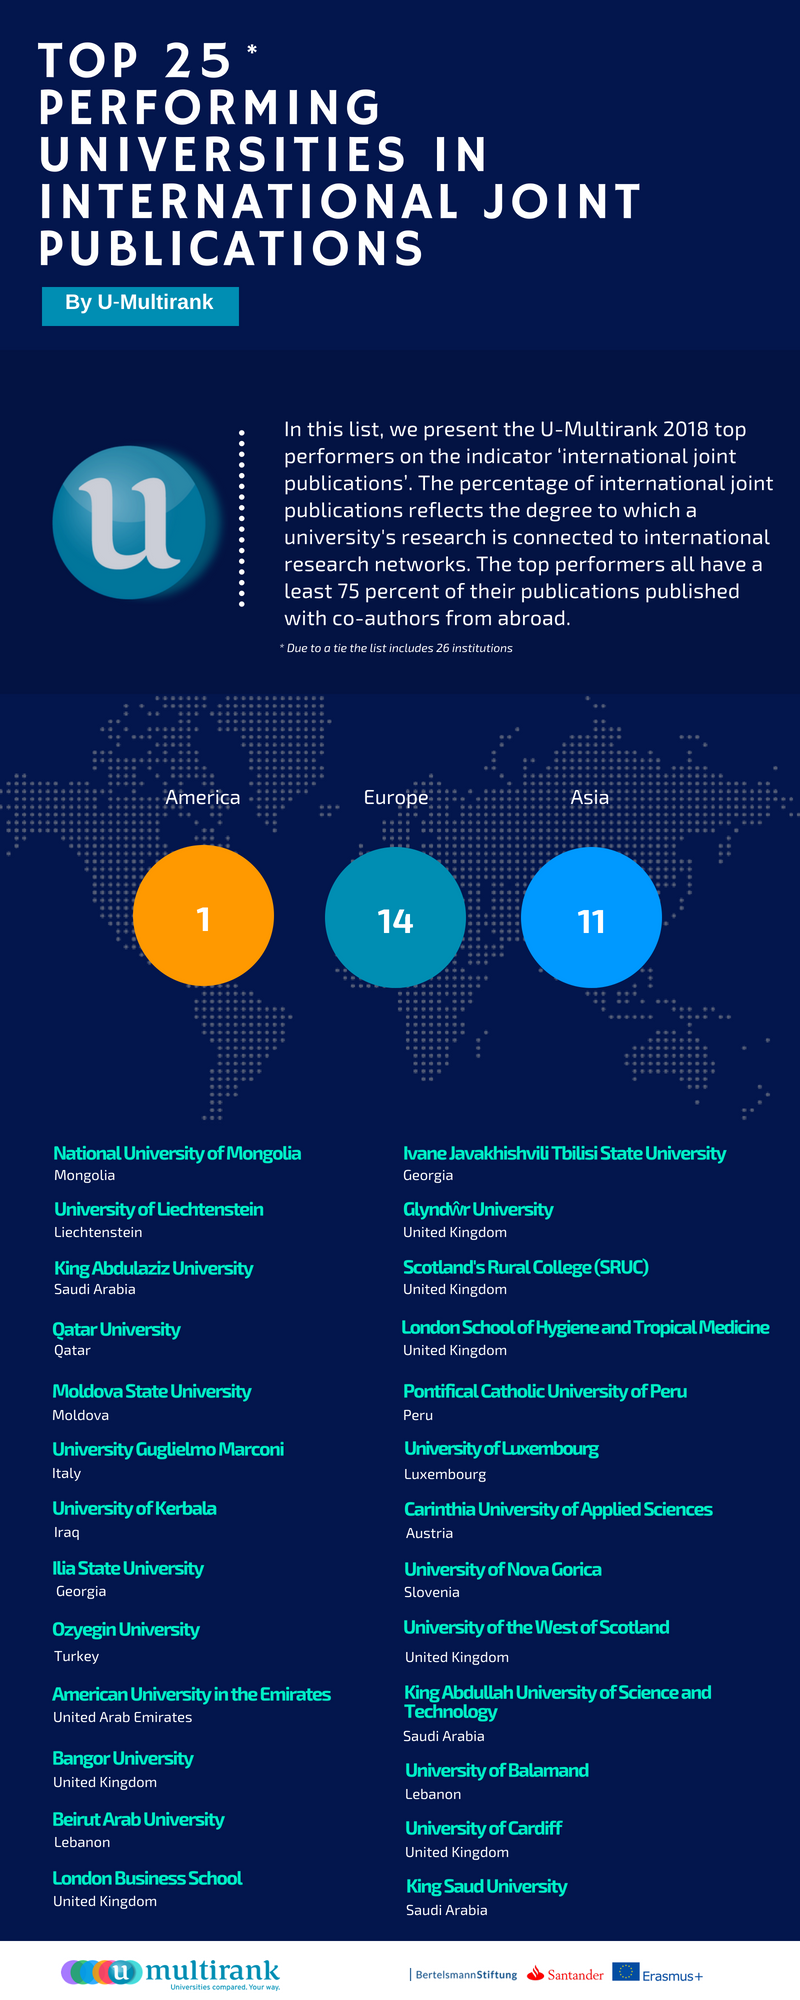 Top 25 Universities in International Joint Publications